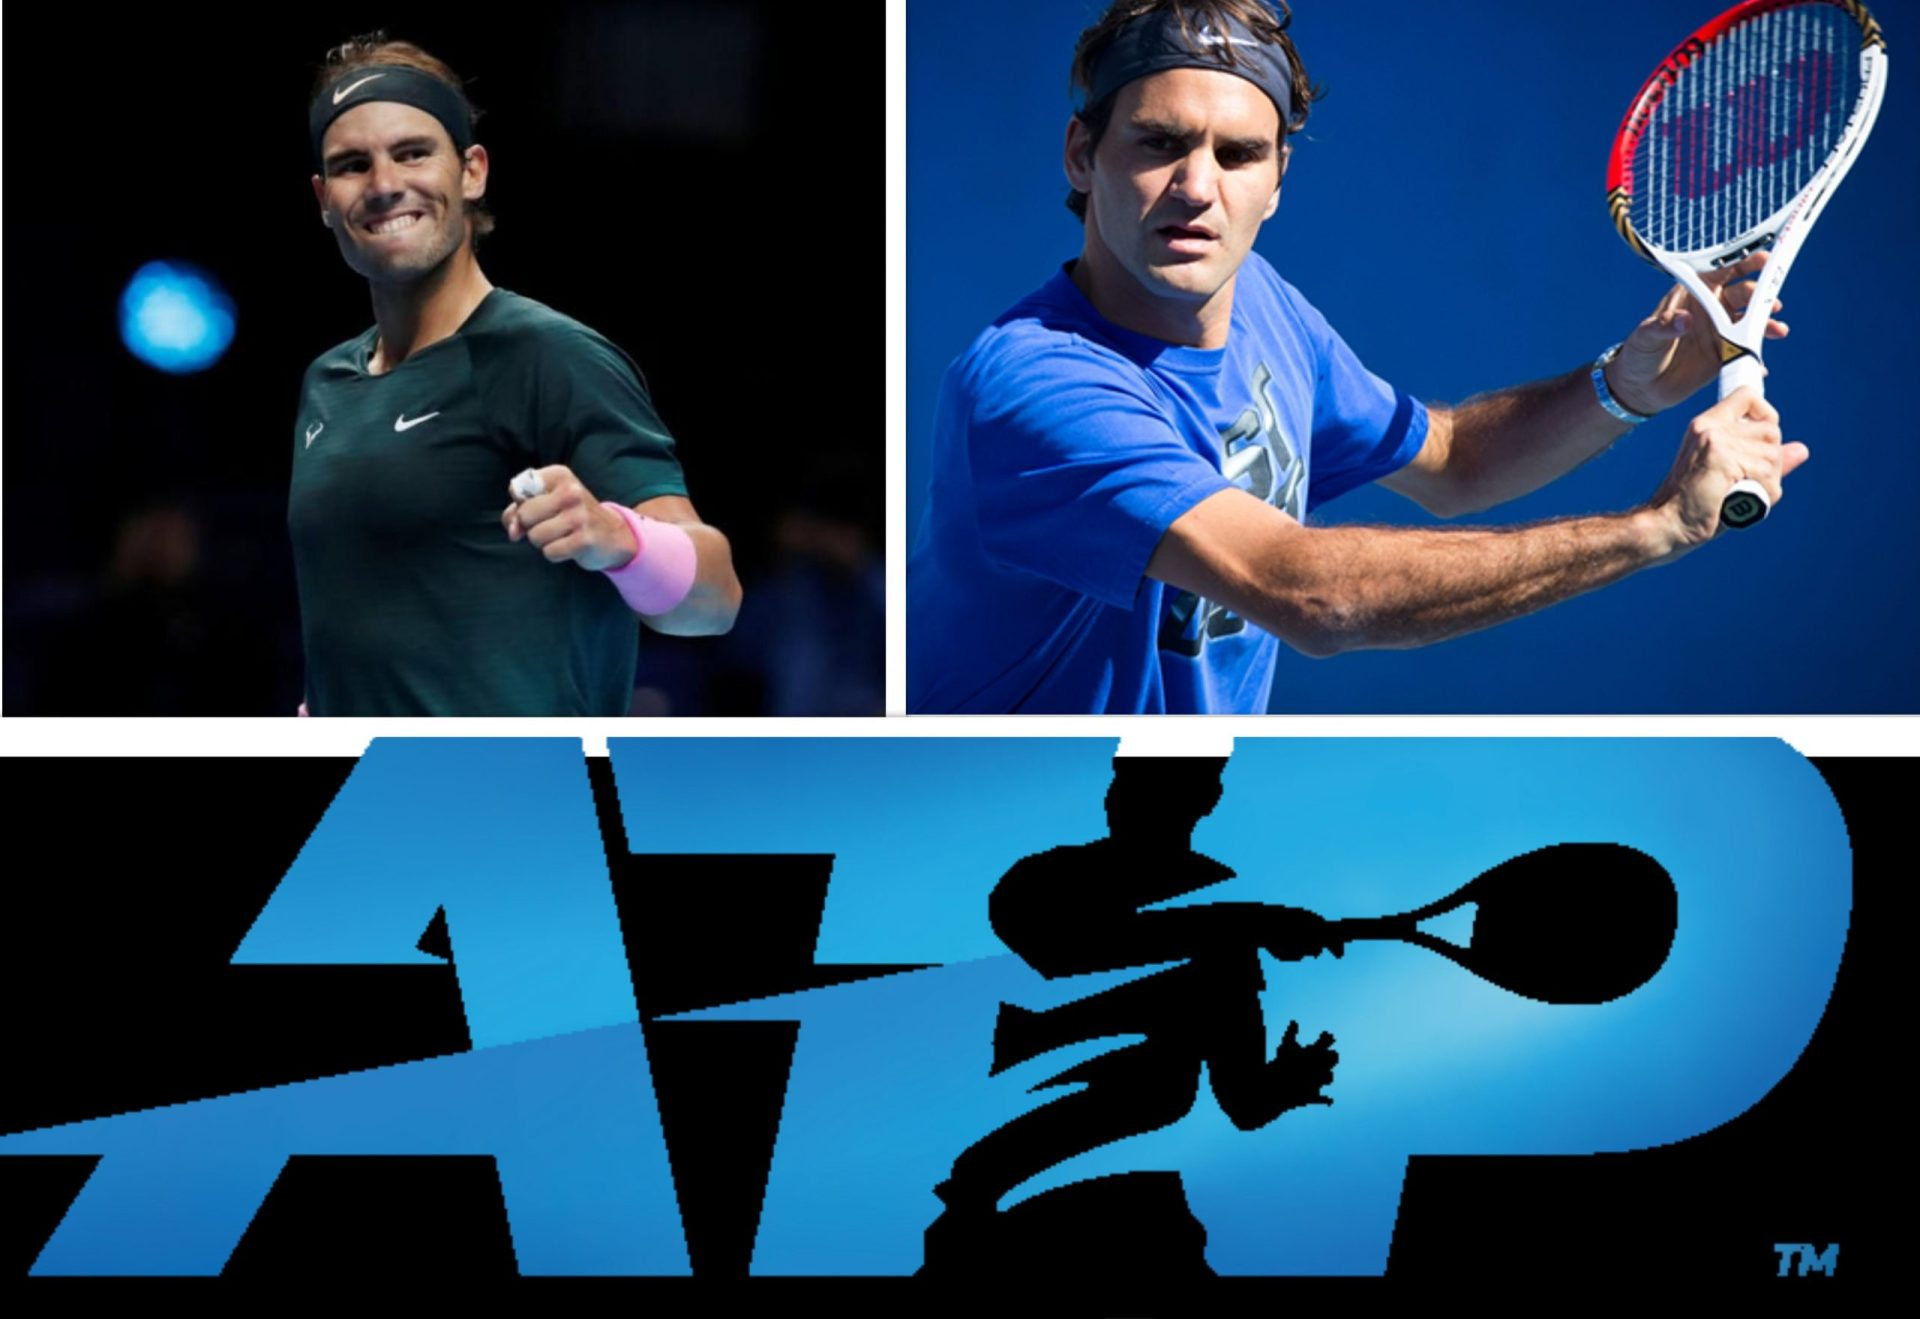 ATP Council 2021 unveiled-Federer and Rafa re-elected, Novak withdraws - THE SPORTS ROOM